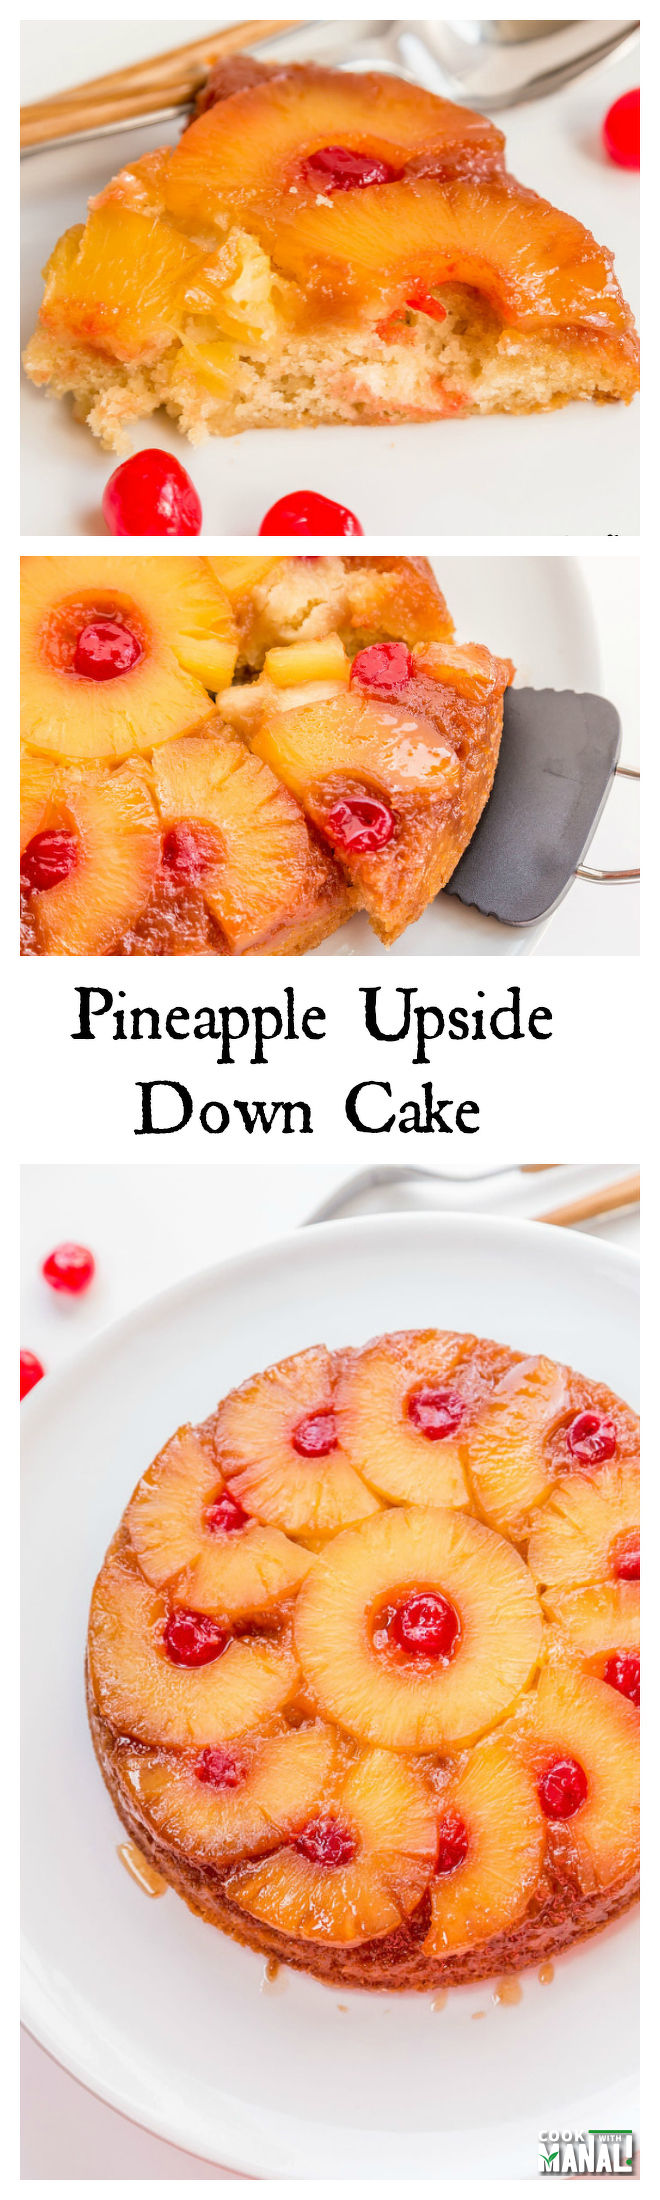 Pineapple-Upside-Down-Cake-Collage